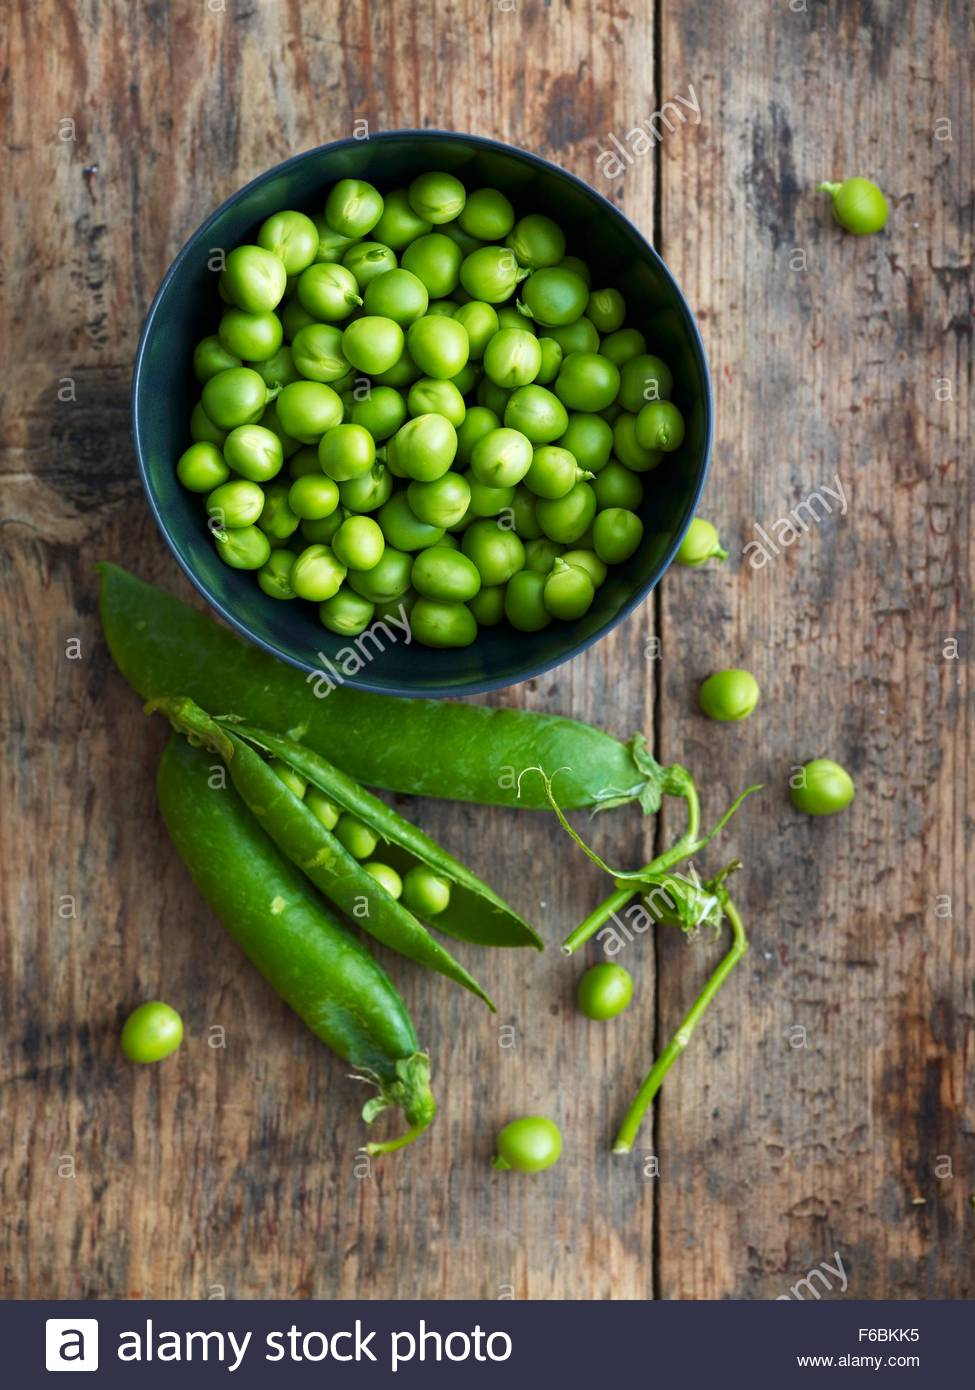 Pea Pods Peas In Bowl   Stock Image